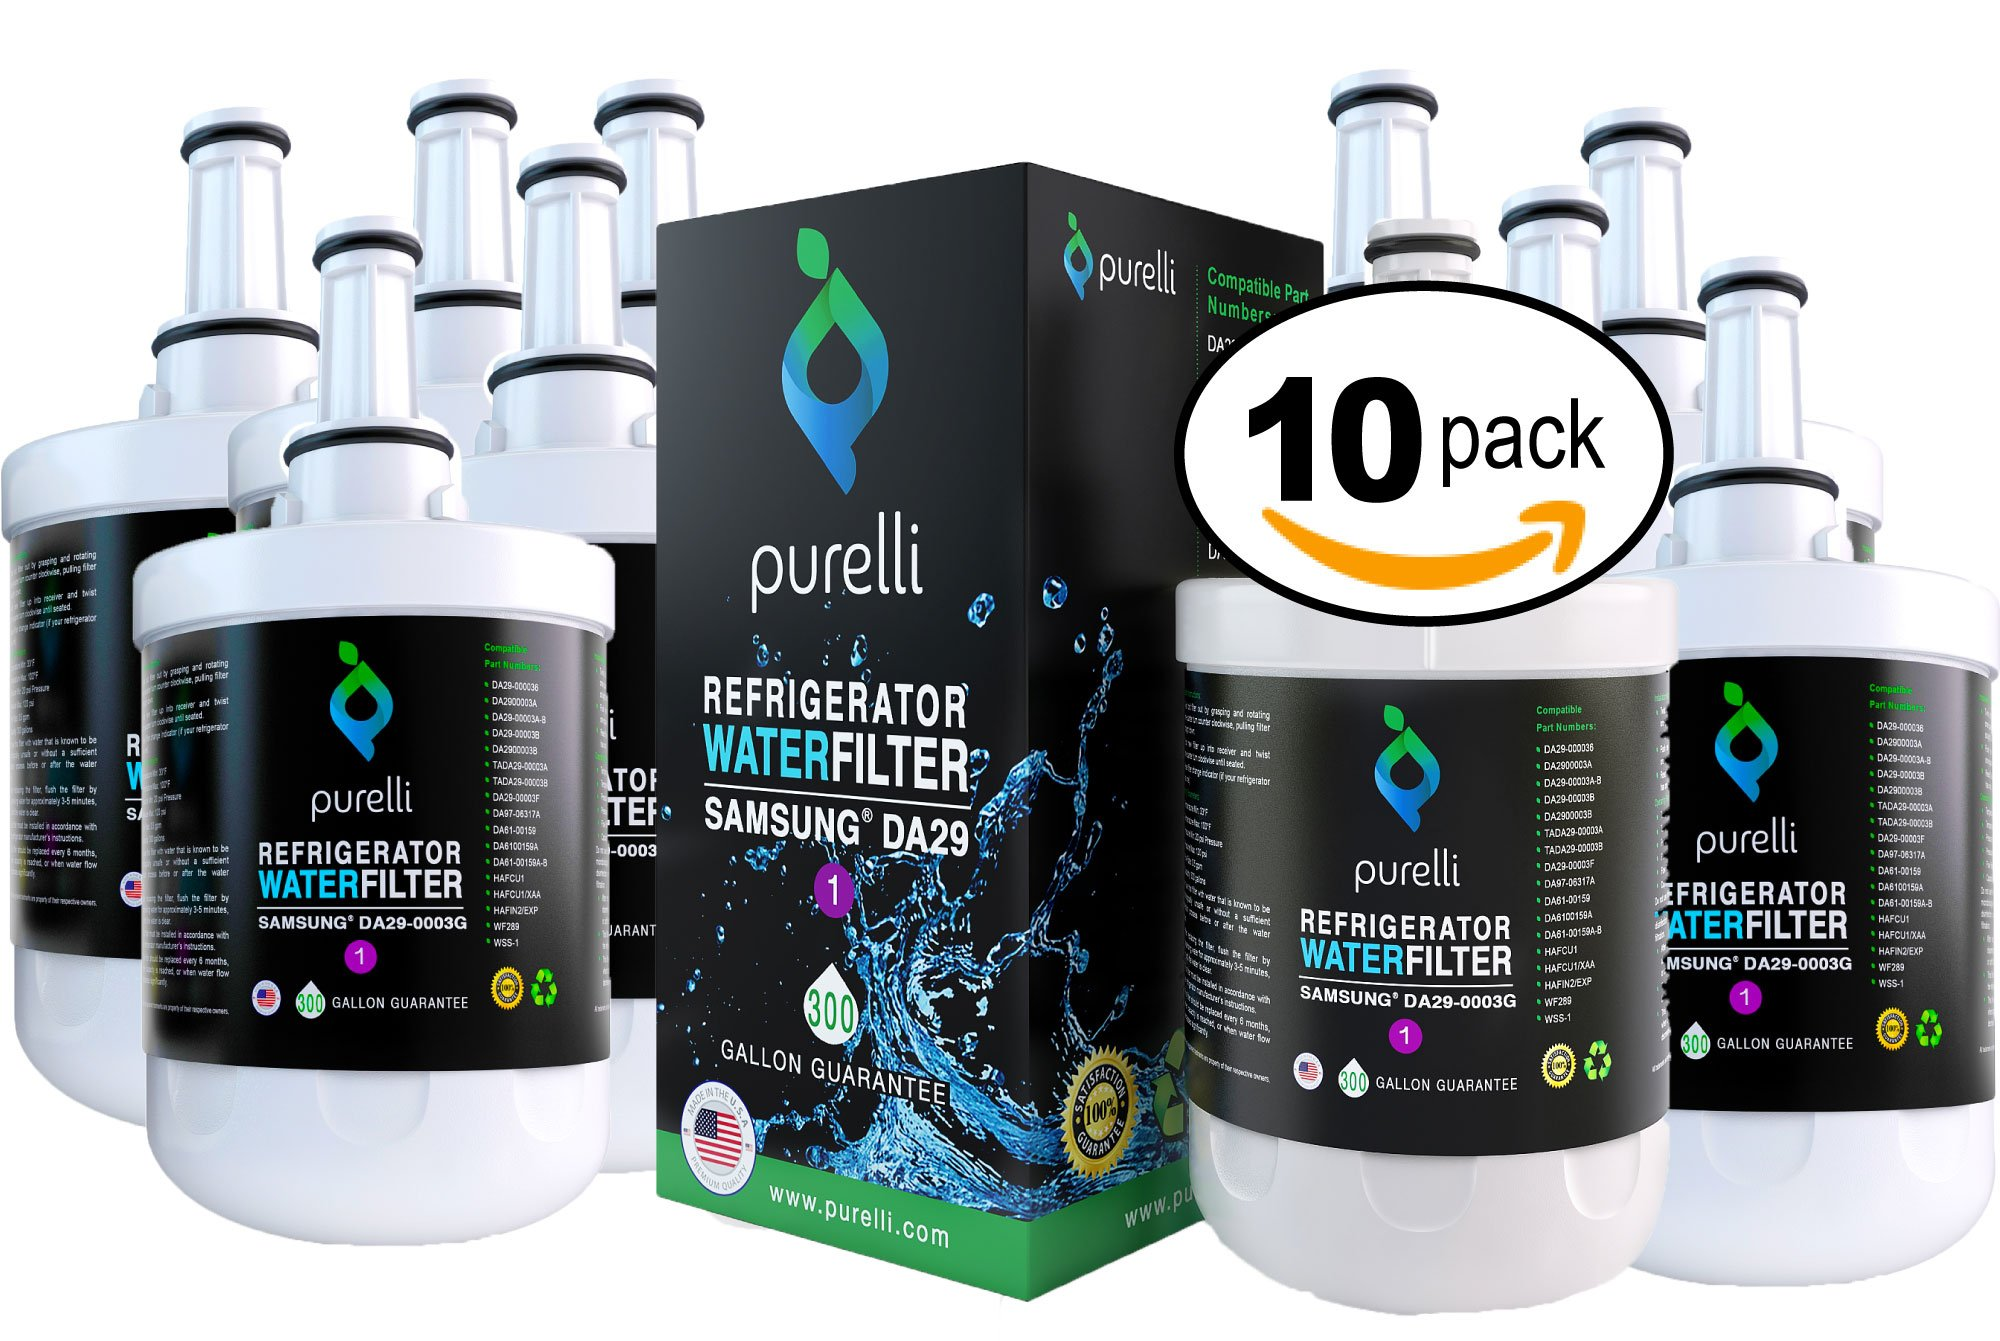 New Samsung DA29-00003G 10-Pack Aqua Pure Plus MADE IN USA Premium Replacement Filter. Also replaces WF289, ES-1 and Samsung HAFCU1 Refrigerator Water Filters by Purelli